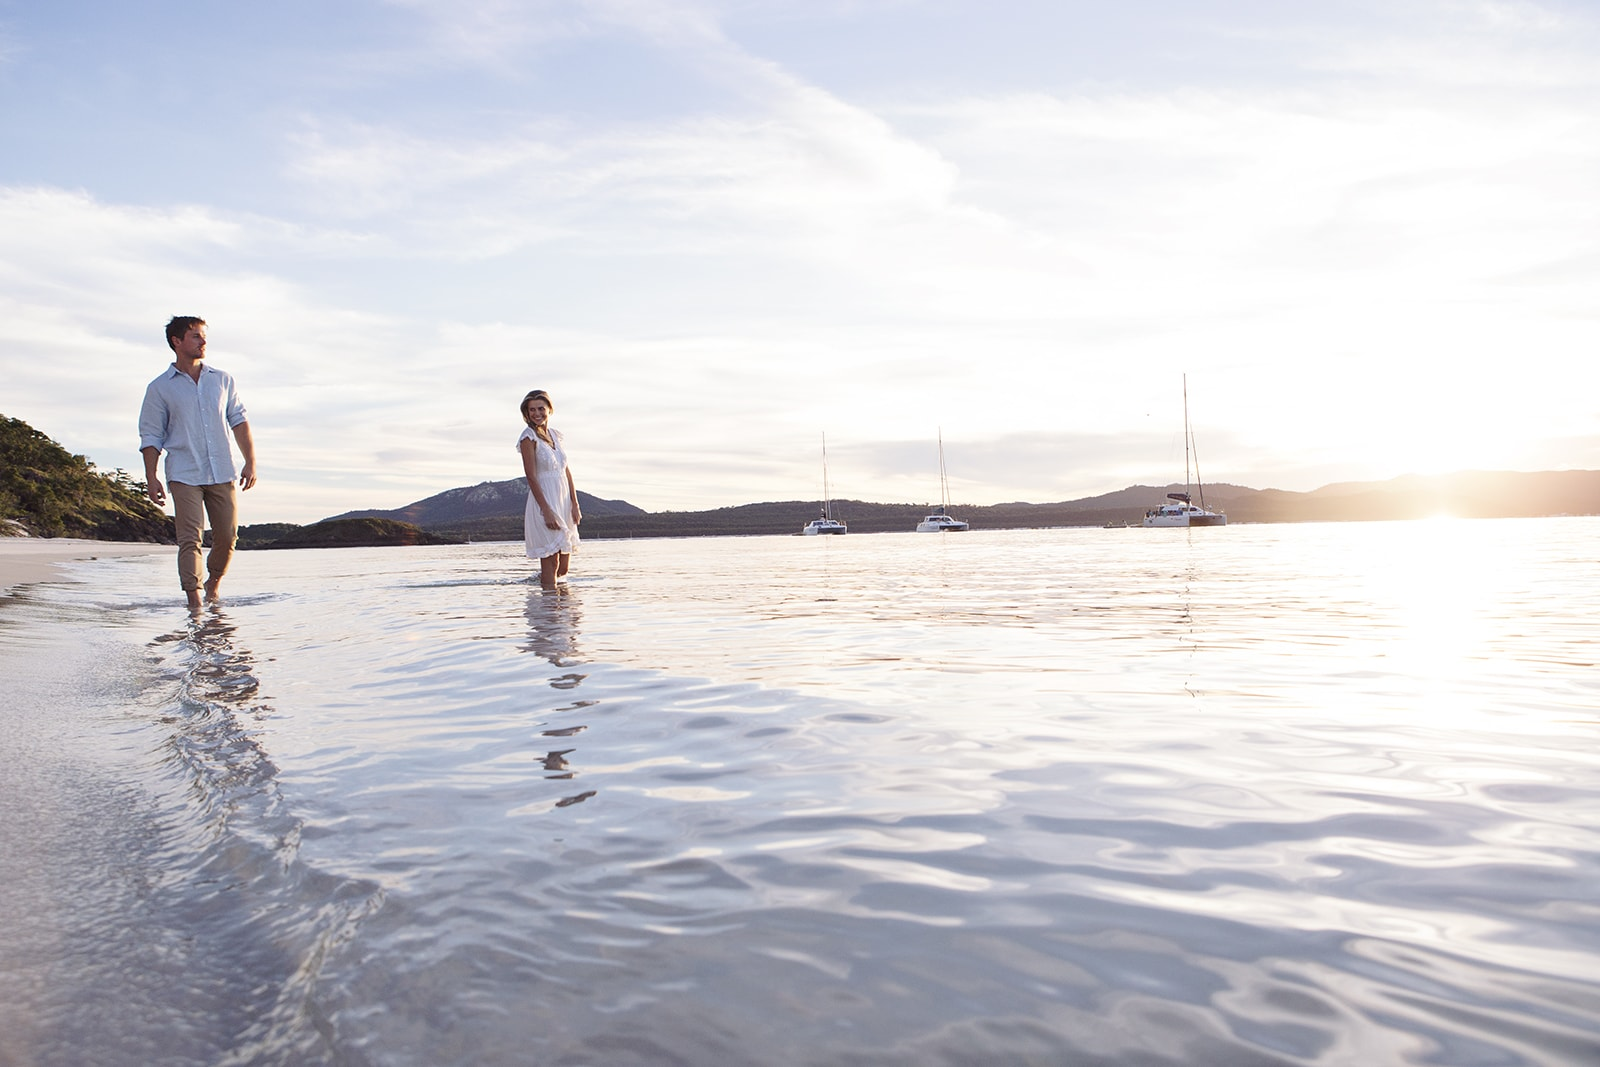 Hamilton Island, Whitsunday Islands, Queensland, Mandatory credit: Tourism Australia, Photographer: Adrian Brown.